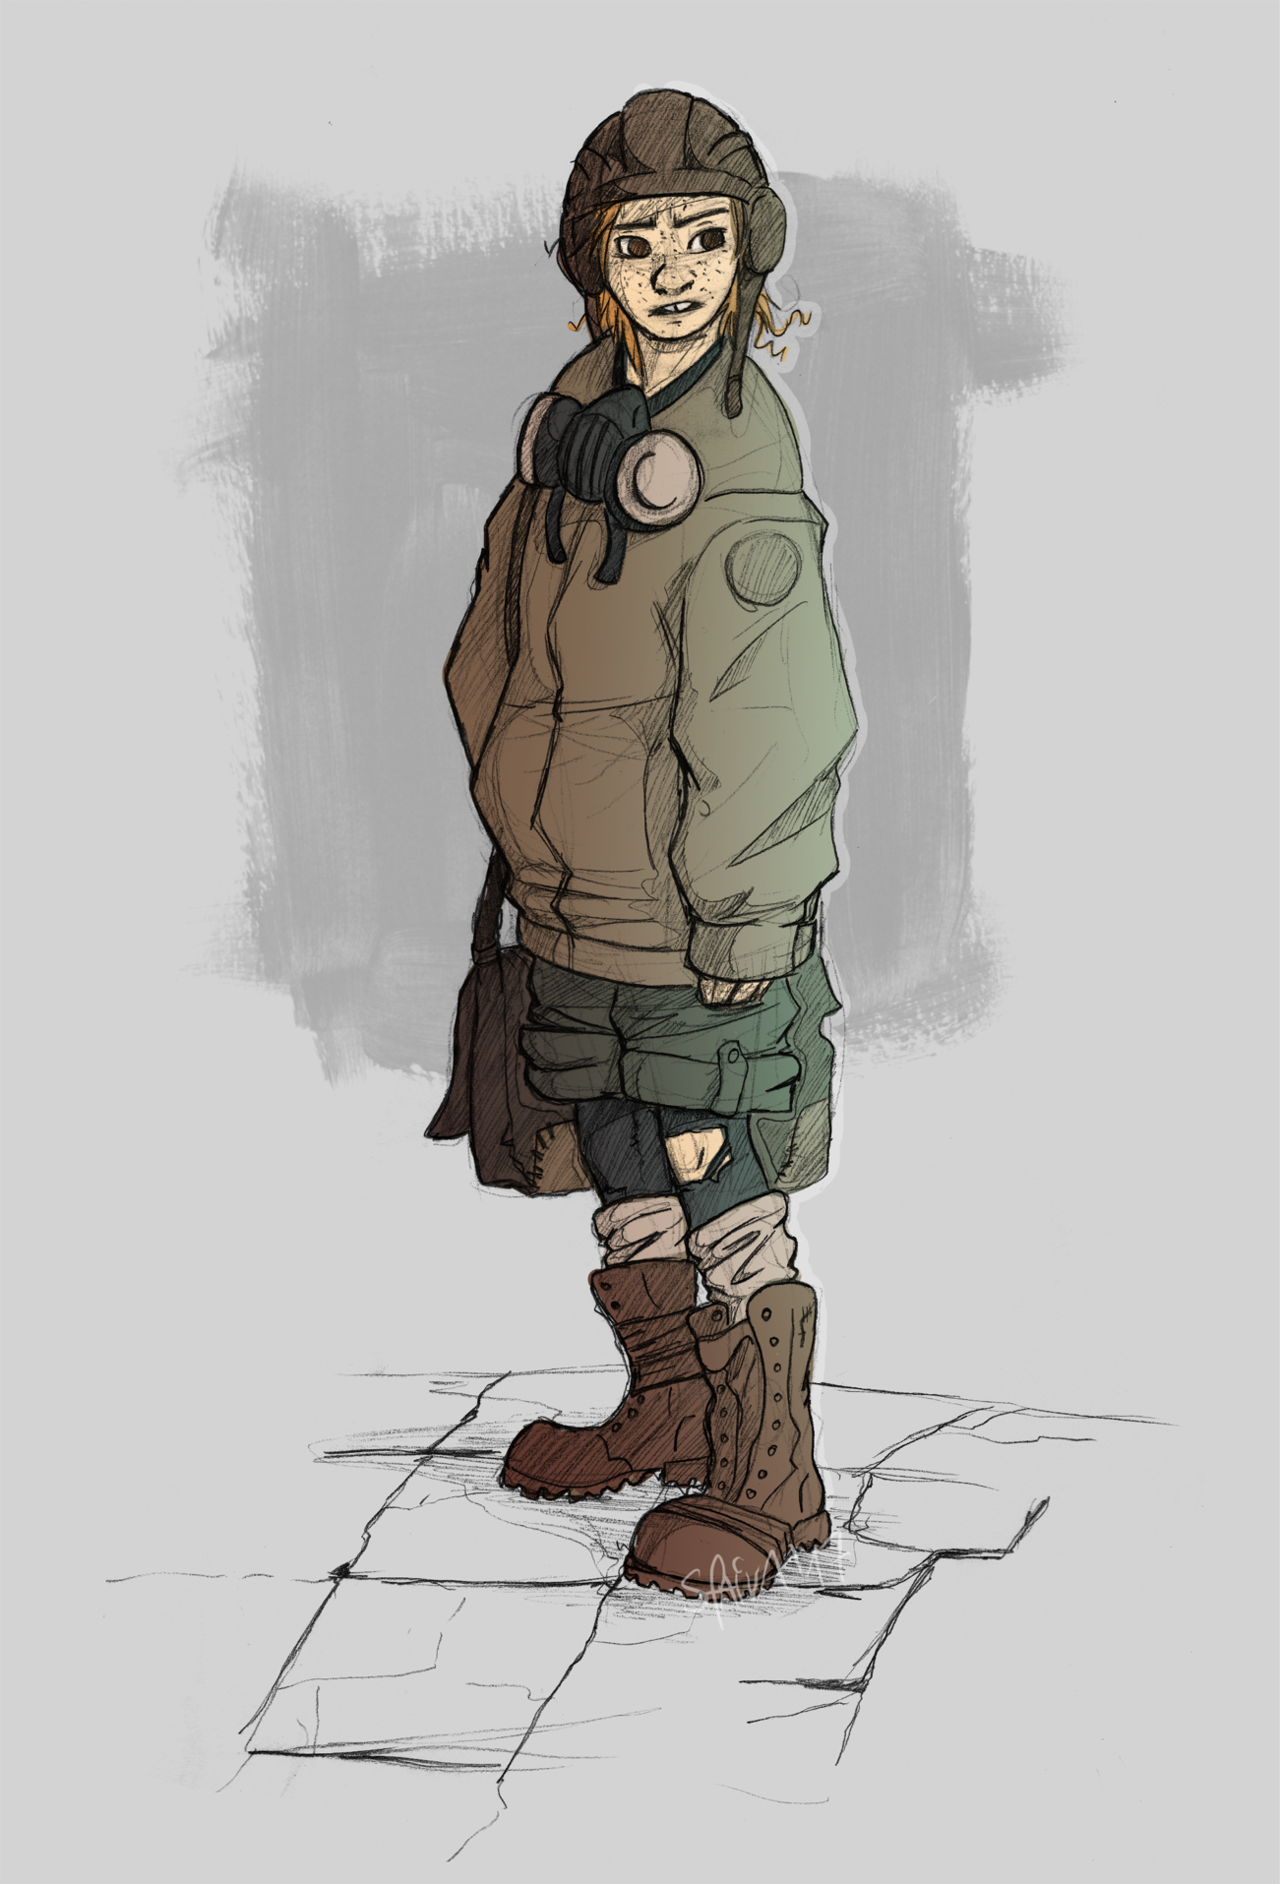 Postapocalyptic character sketches